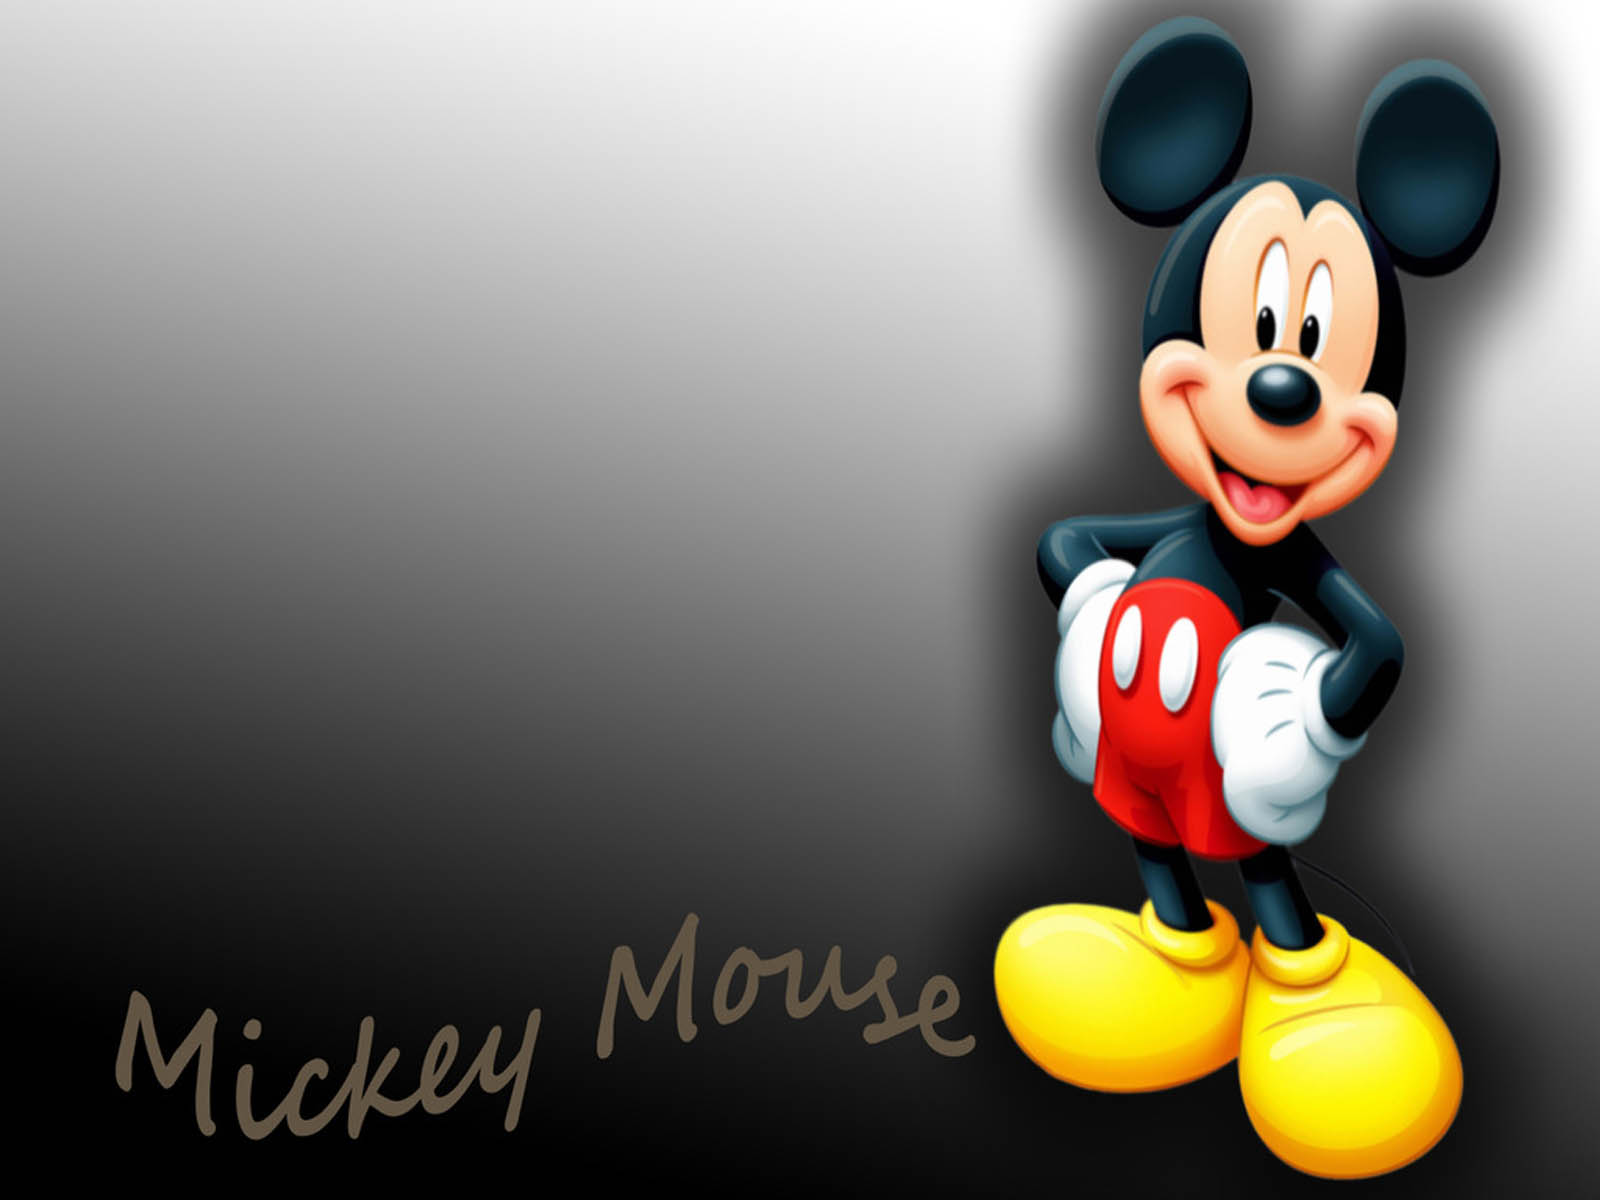 Wallpapers HQ Images Download Desktop Wallpapers Mickey Mouse 1600x1200